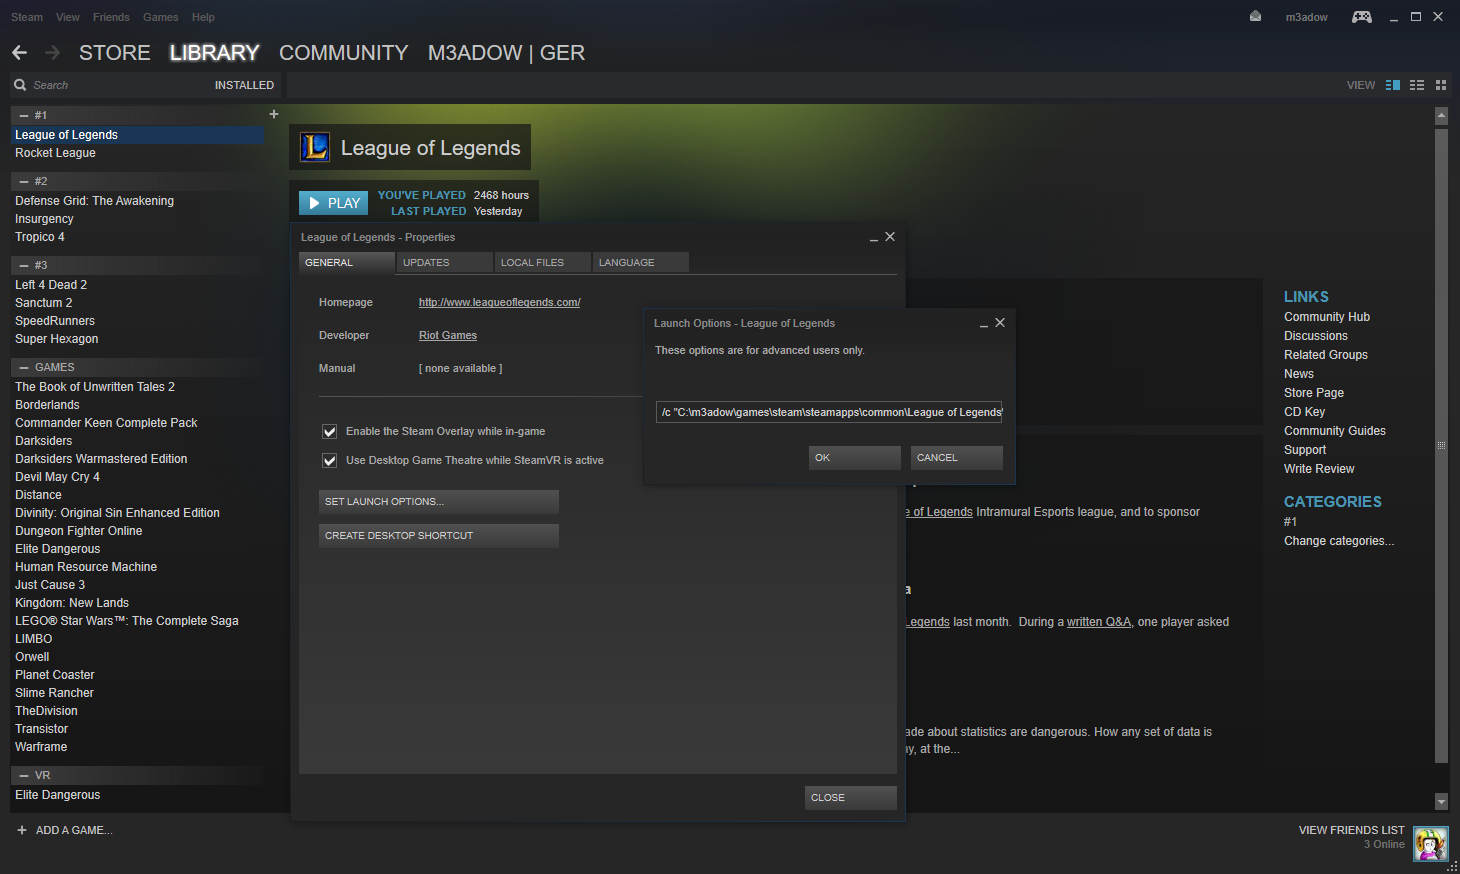 Steam League of Legends Launch Options